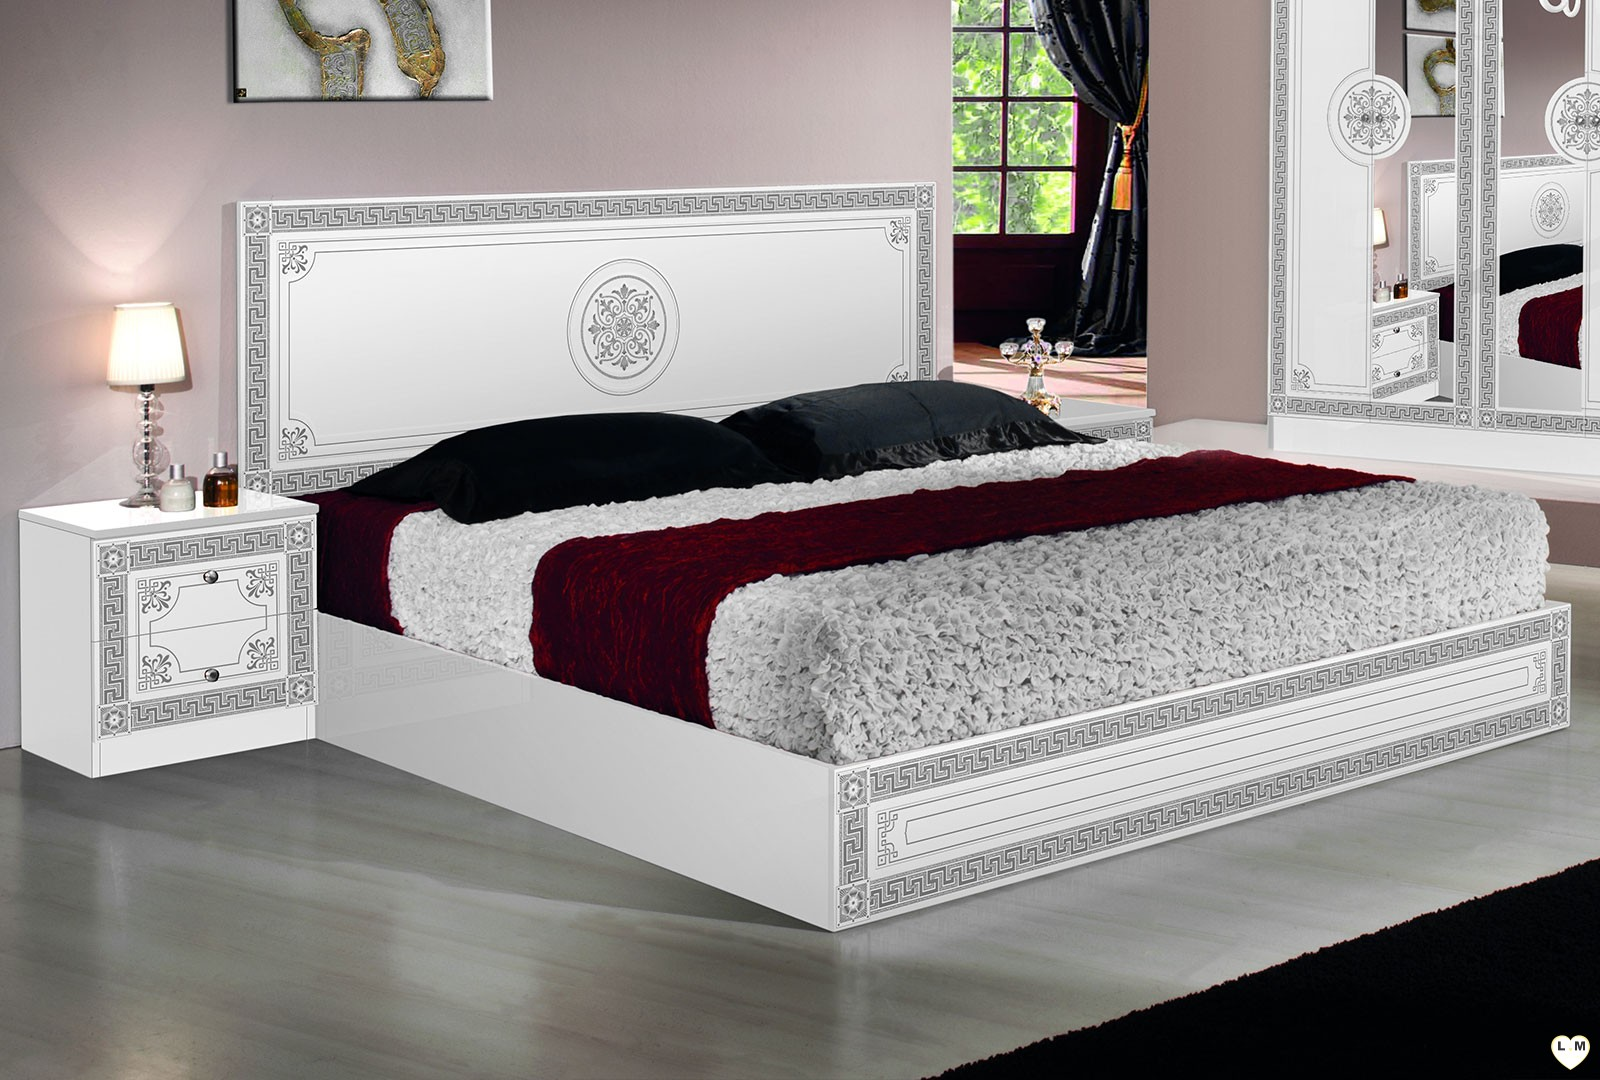 rio laque blanc et argent ensemble chambre a coucher lignemeuble com. Black Bedroom Furniture Sets. Home Design Ideas